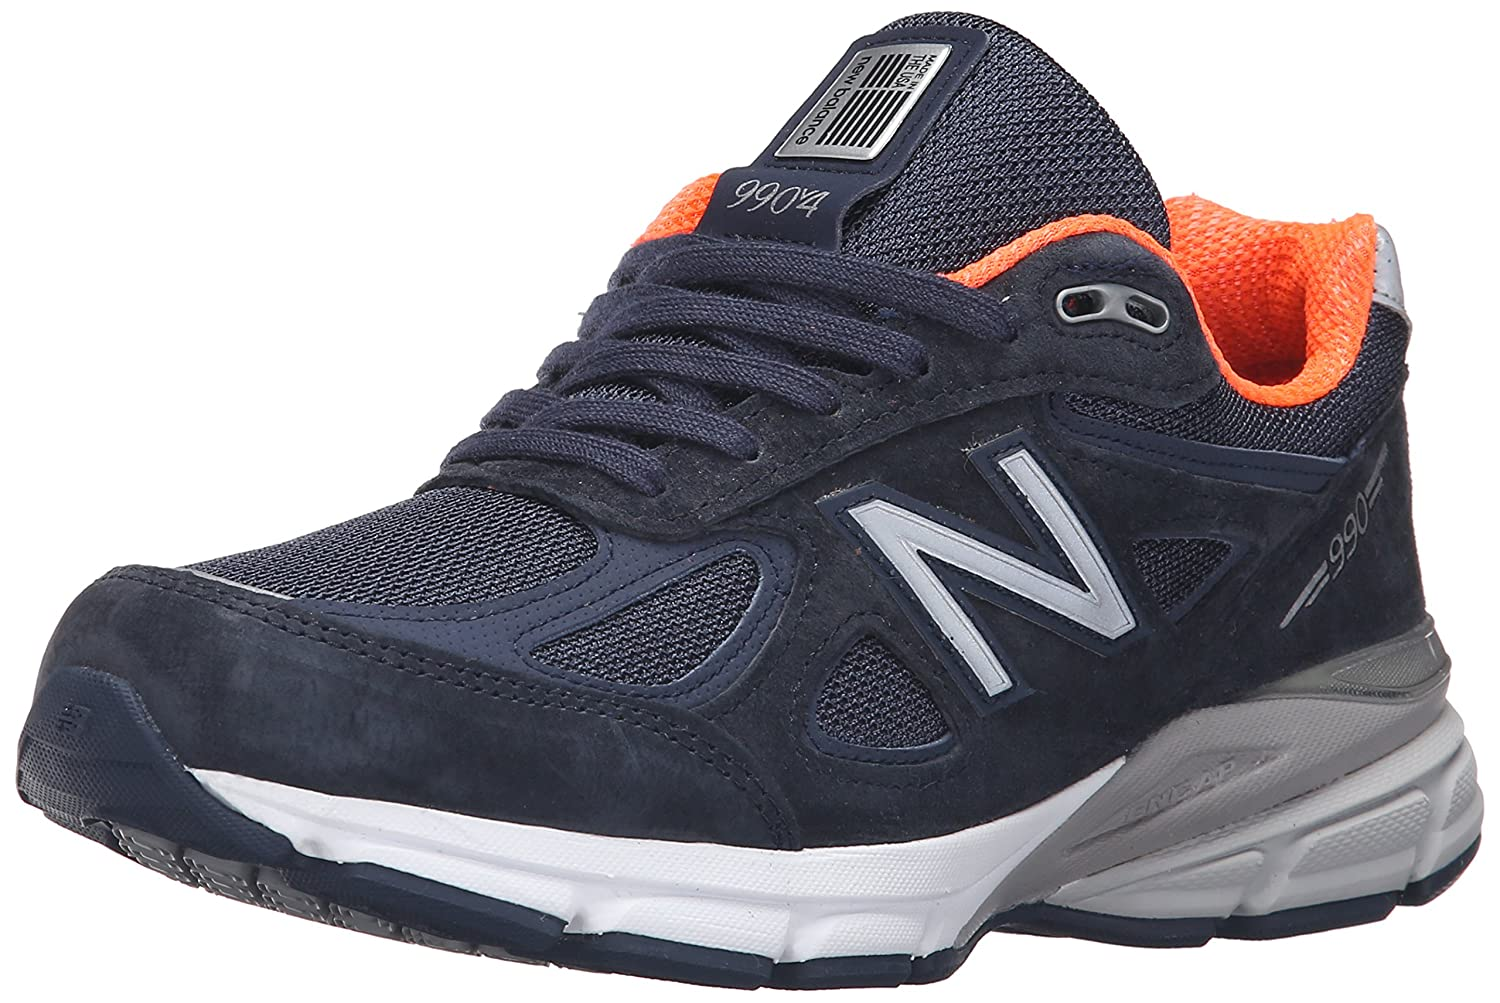 New Balance Women's w990v4 Running Shoe B0166G162C 6.5 2E US|Navy